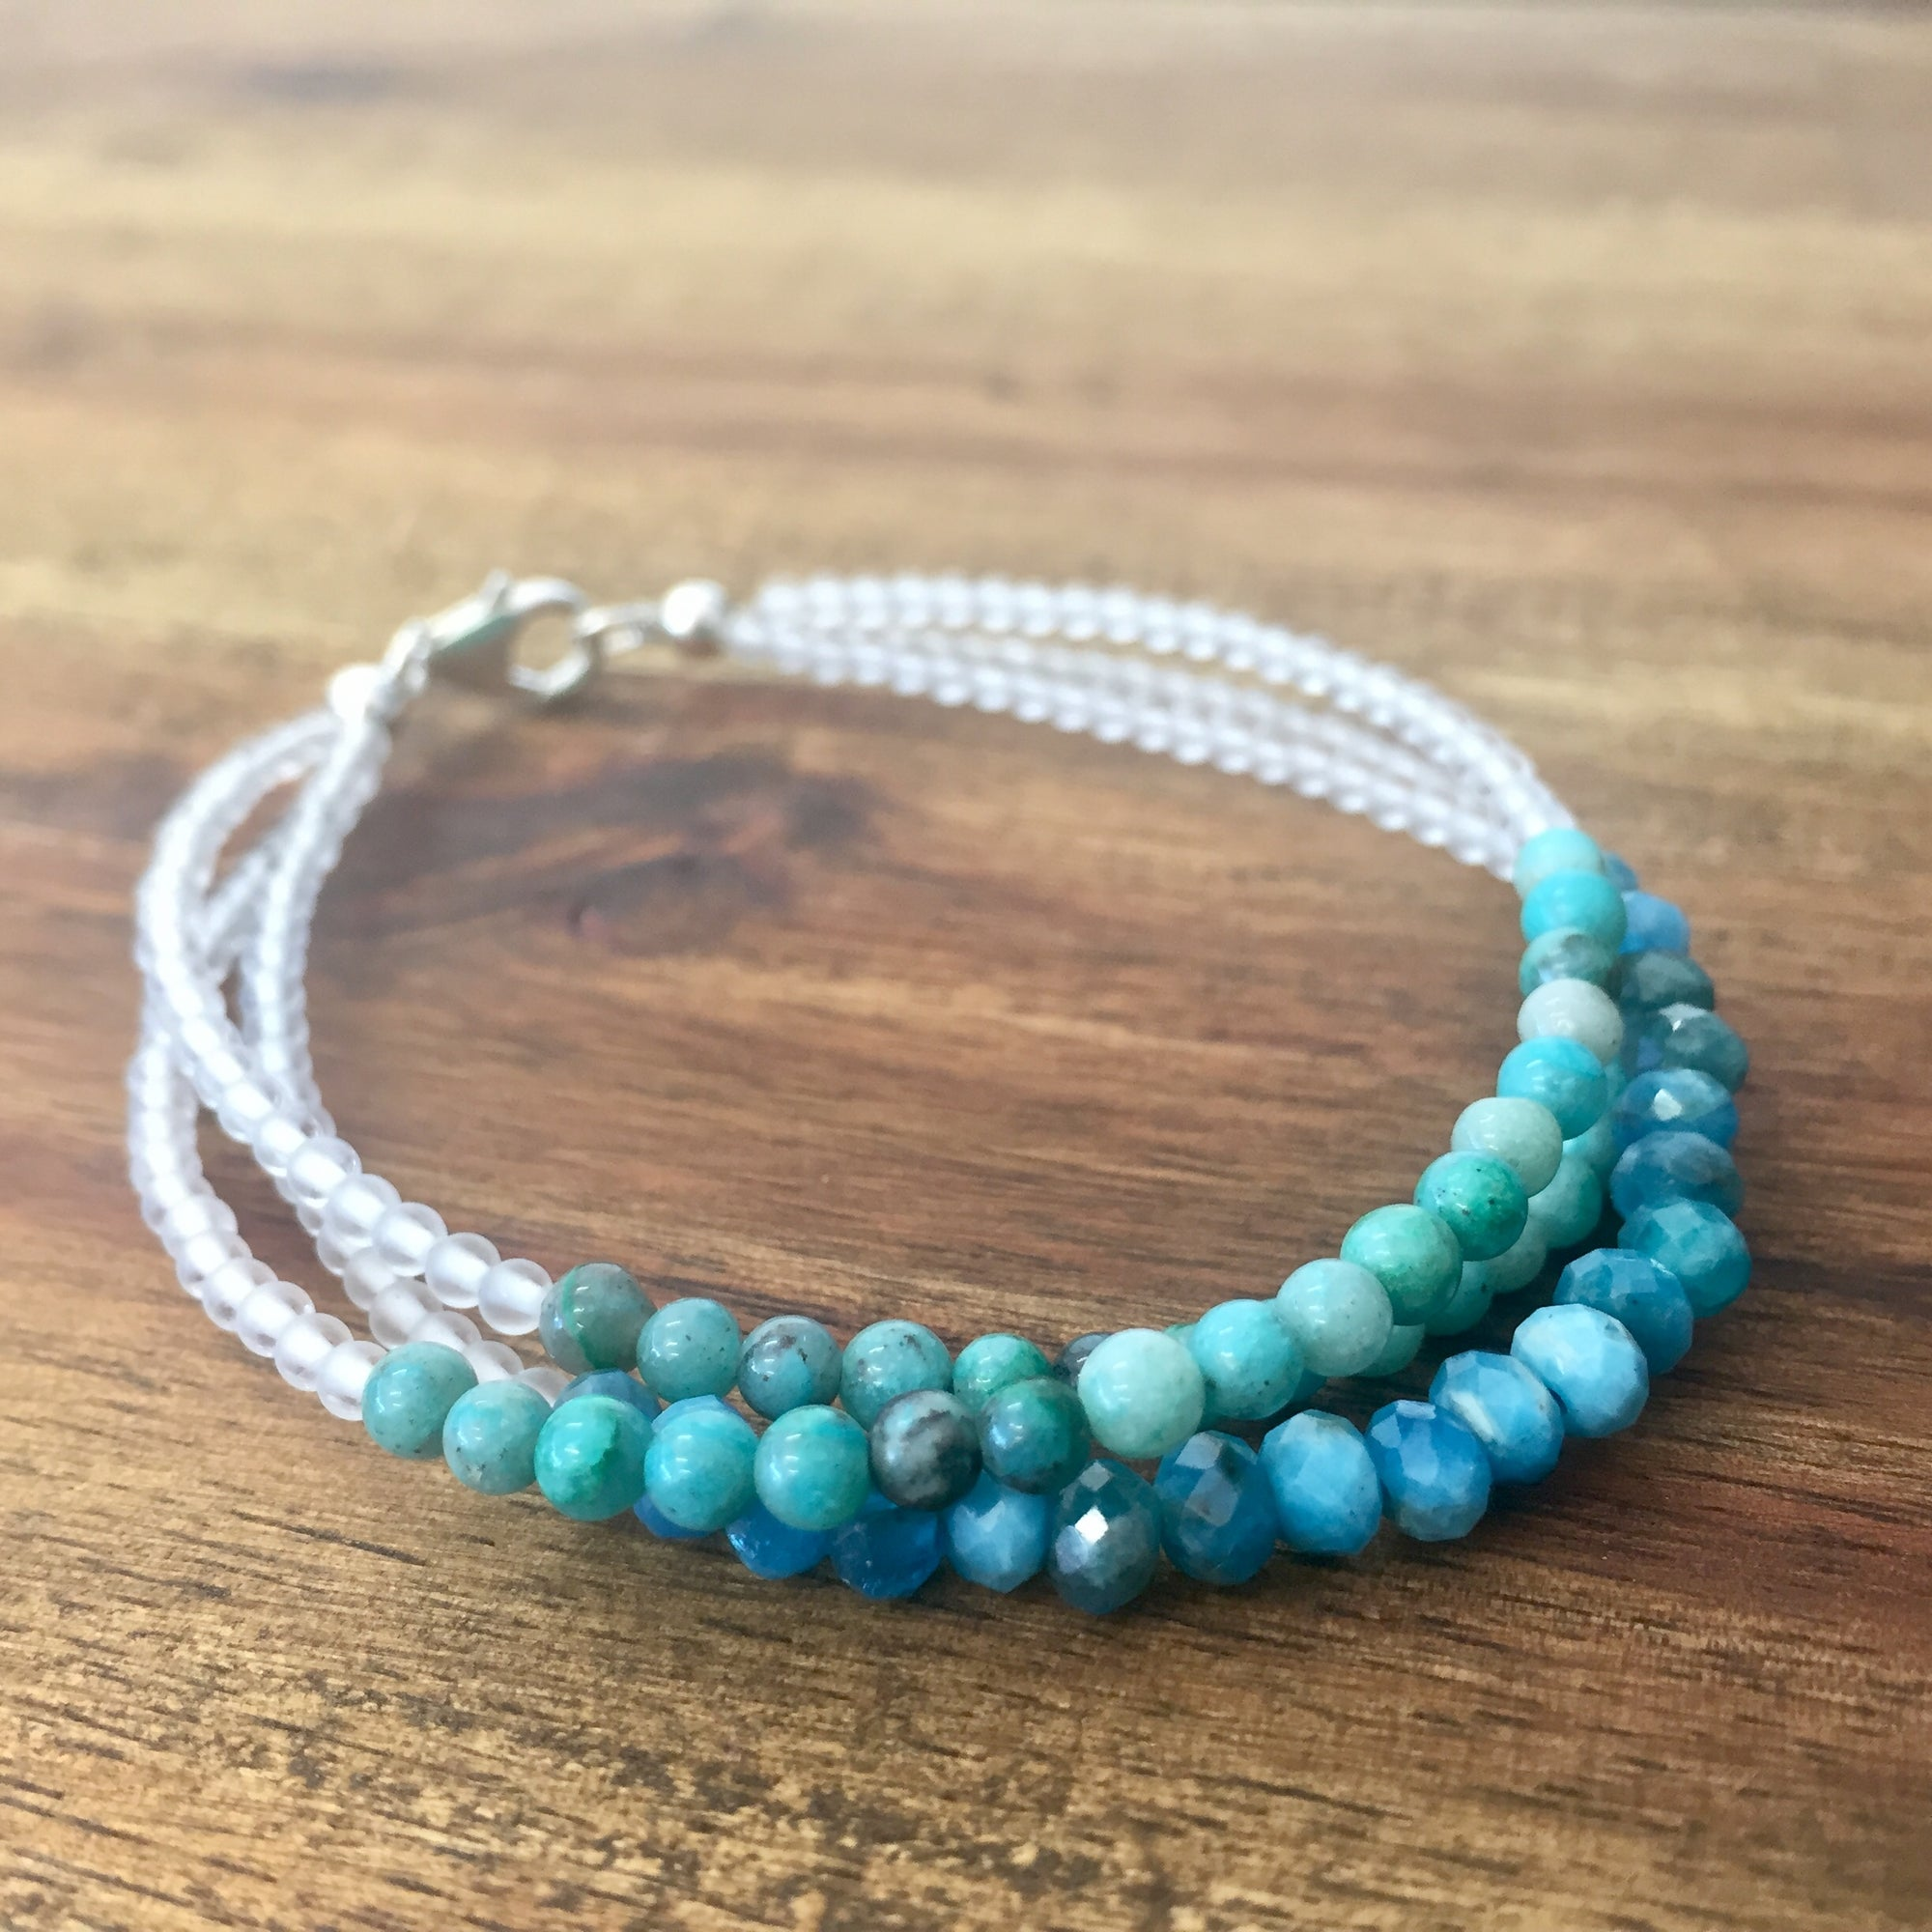 Little Mermaid Multi-Strand Chrysocolla & Apatite Bracelet - Limited Edition